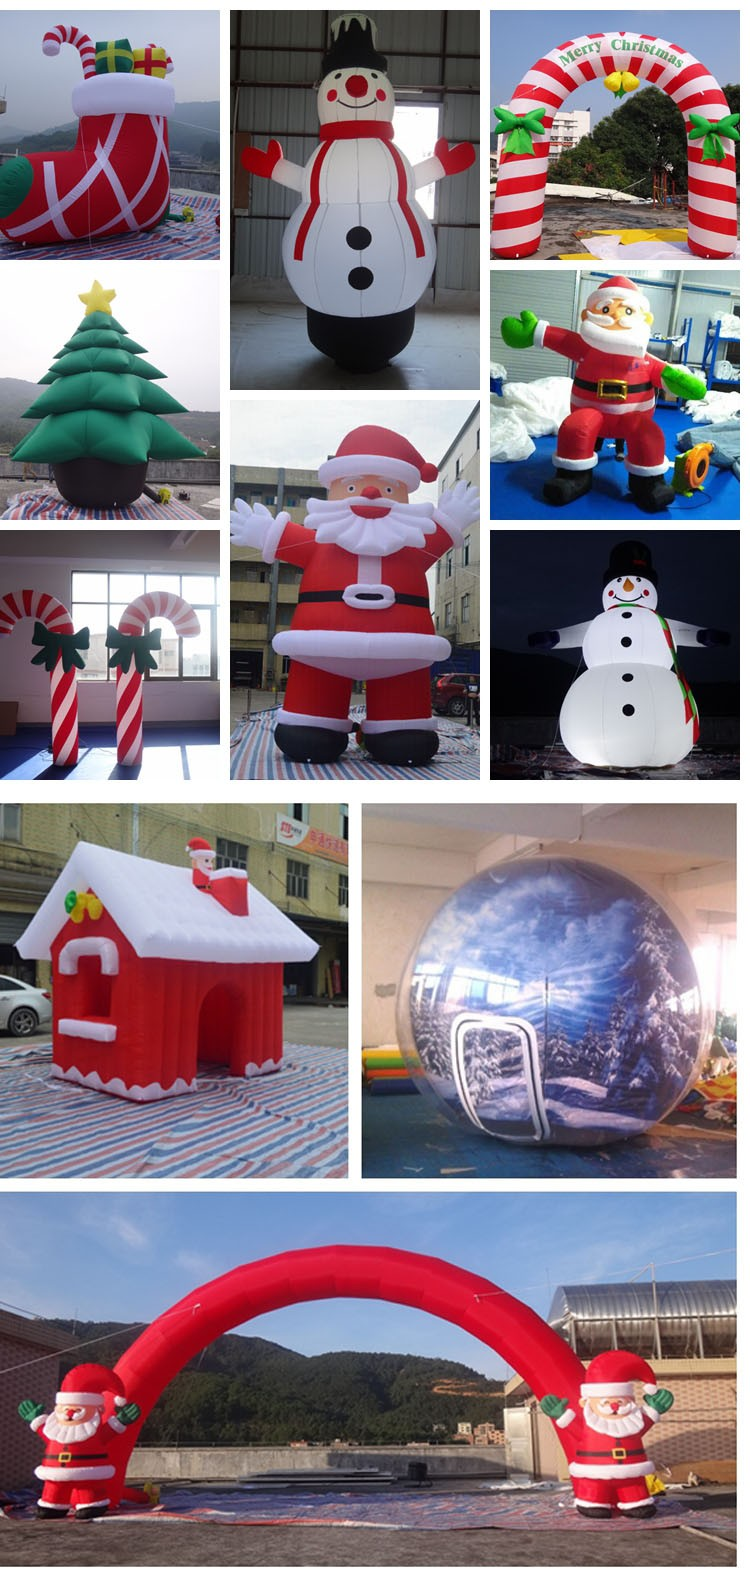 Giant Outdoor Olaf Inflatable Christmas Snowman With Led Light ...